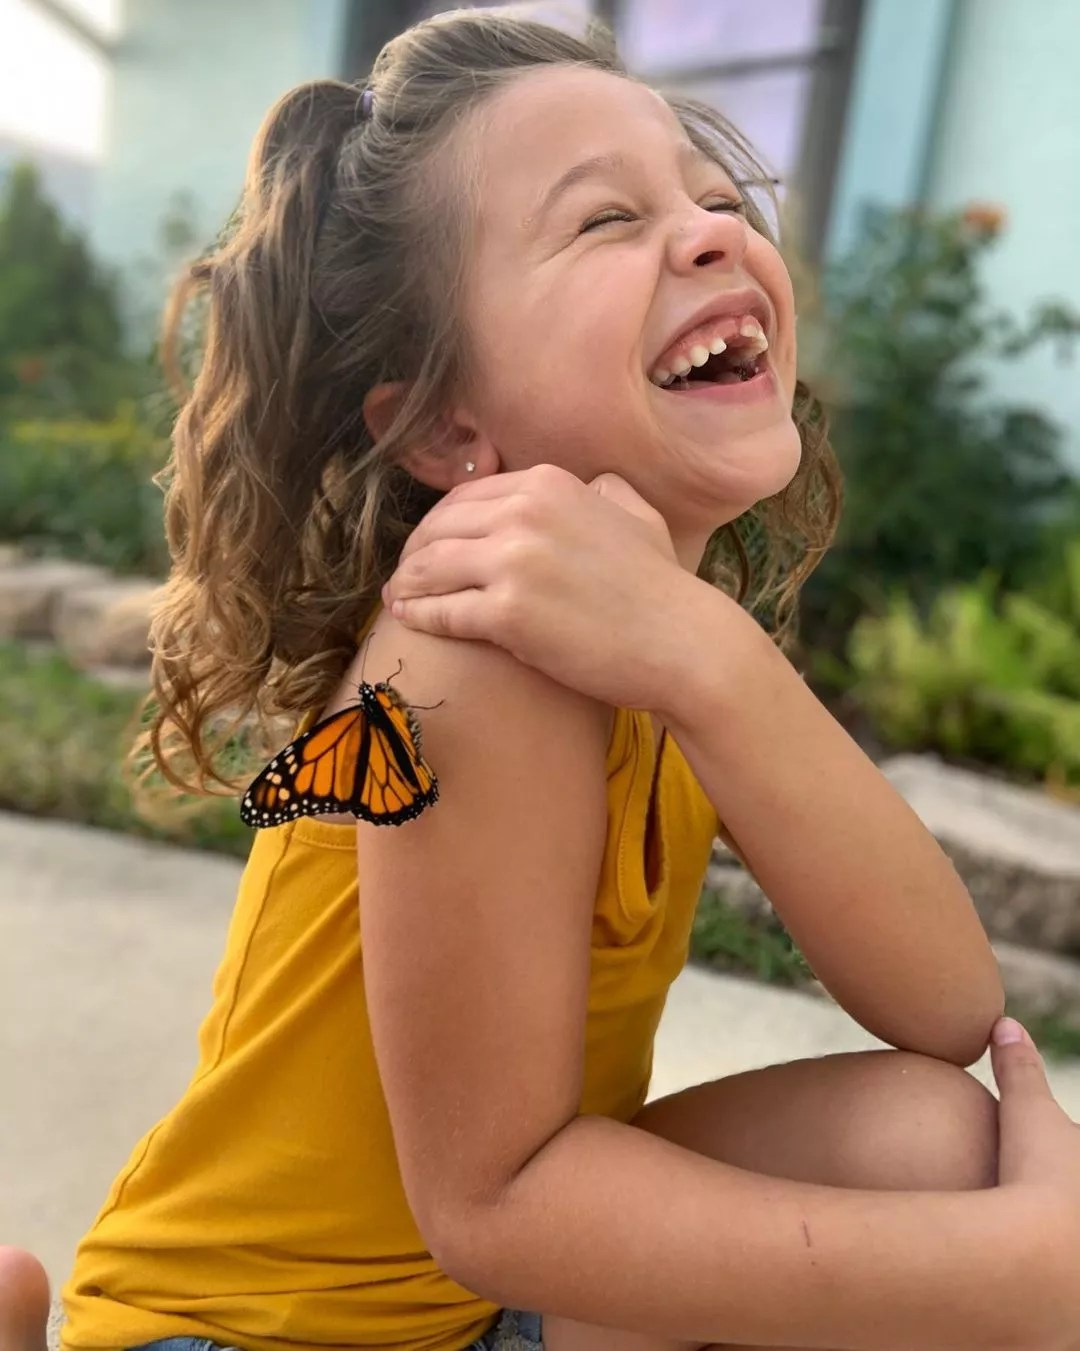 Little Girl Laughing with a Butterfly on her Arm. Photo by Instagram user @butterflyworldflorida